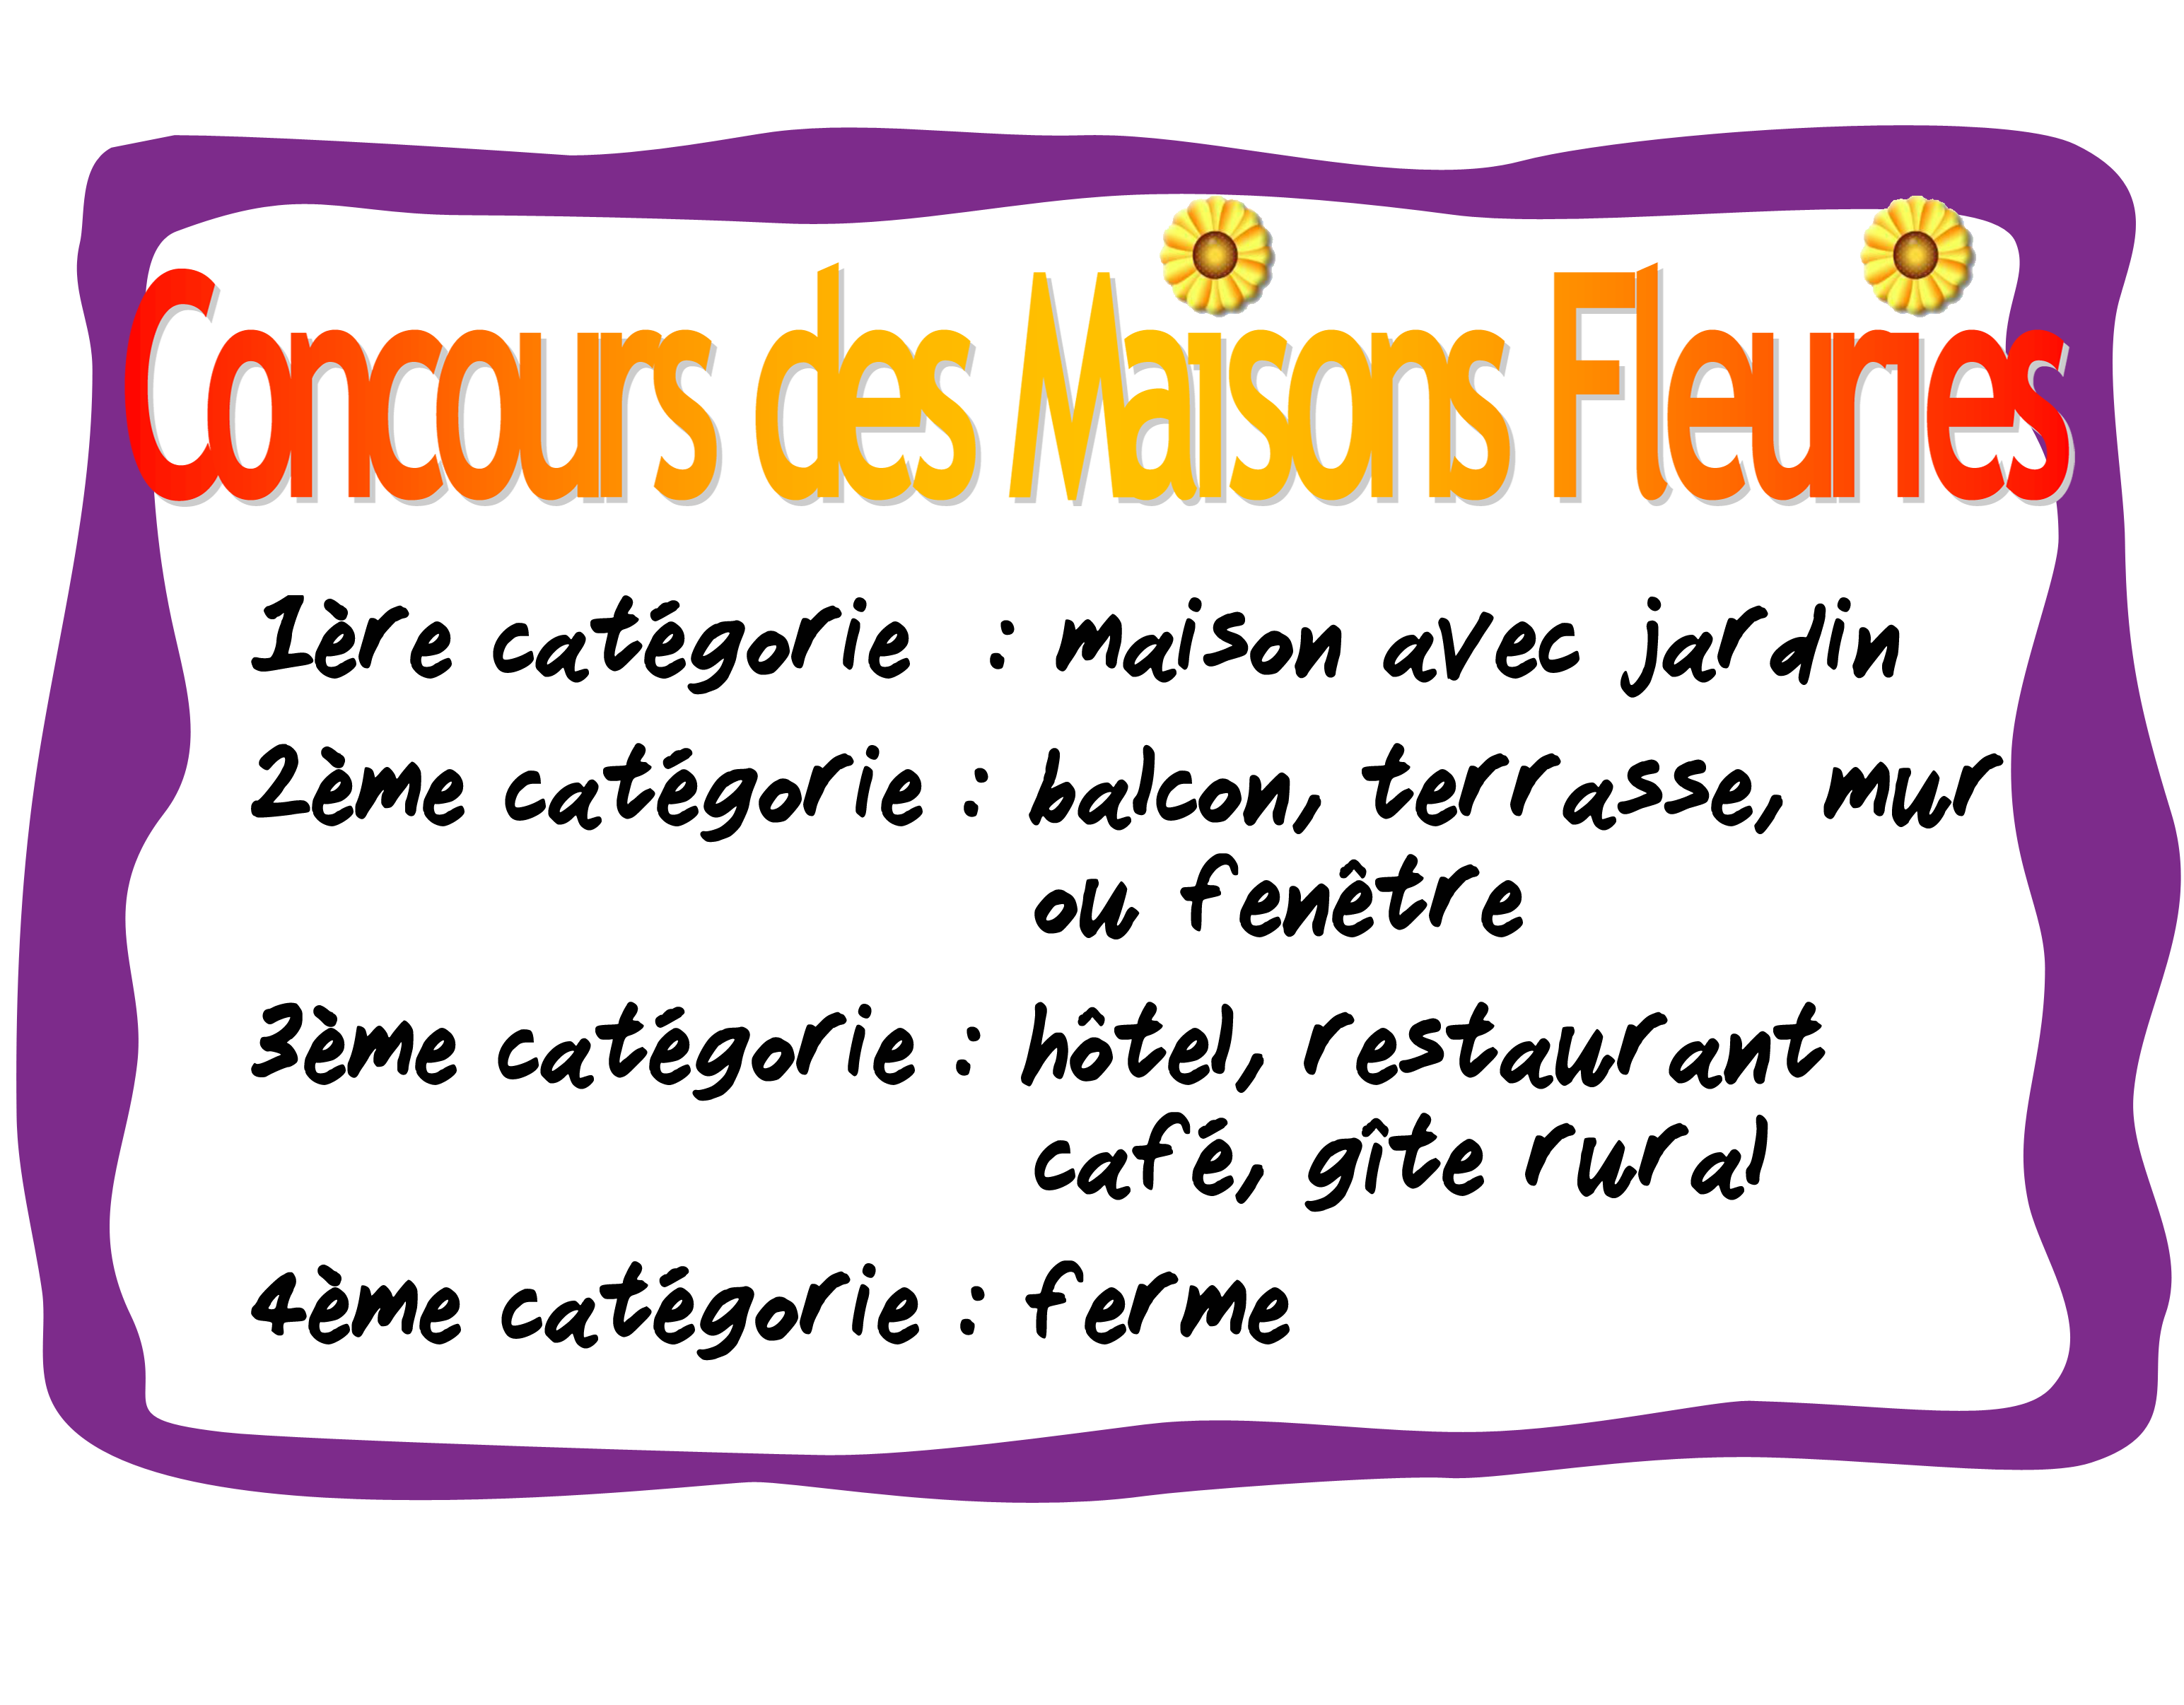 concours-maisons-fleuries.png